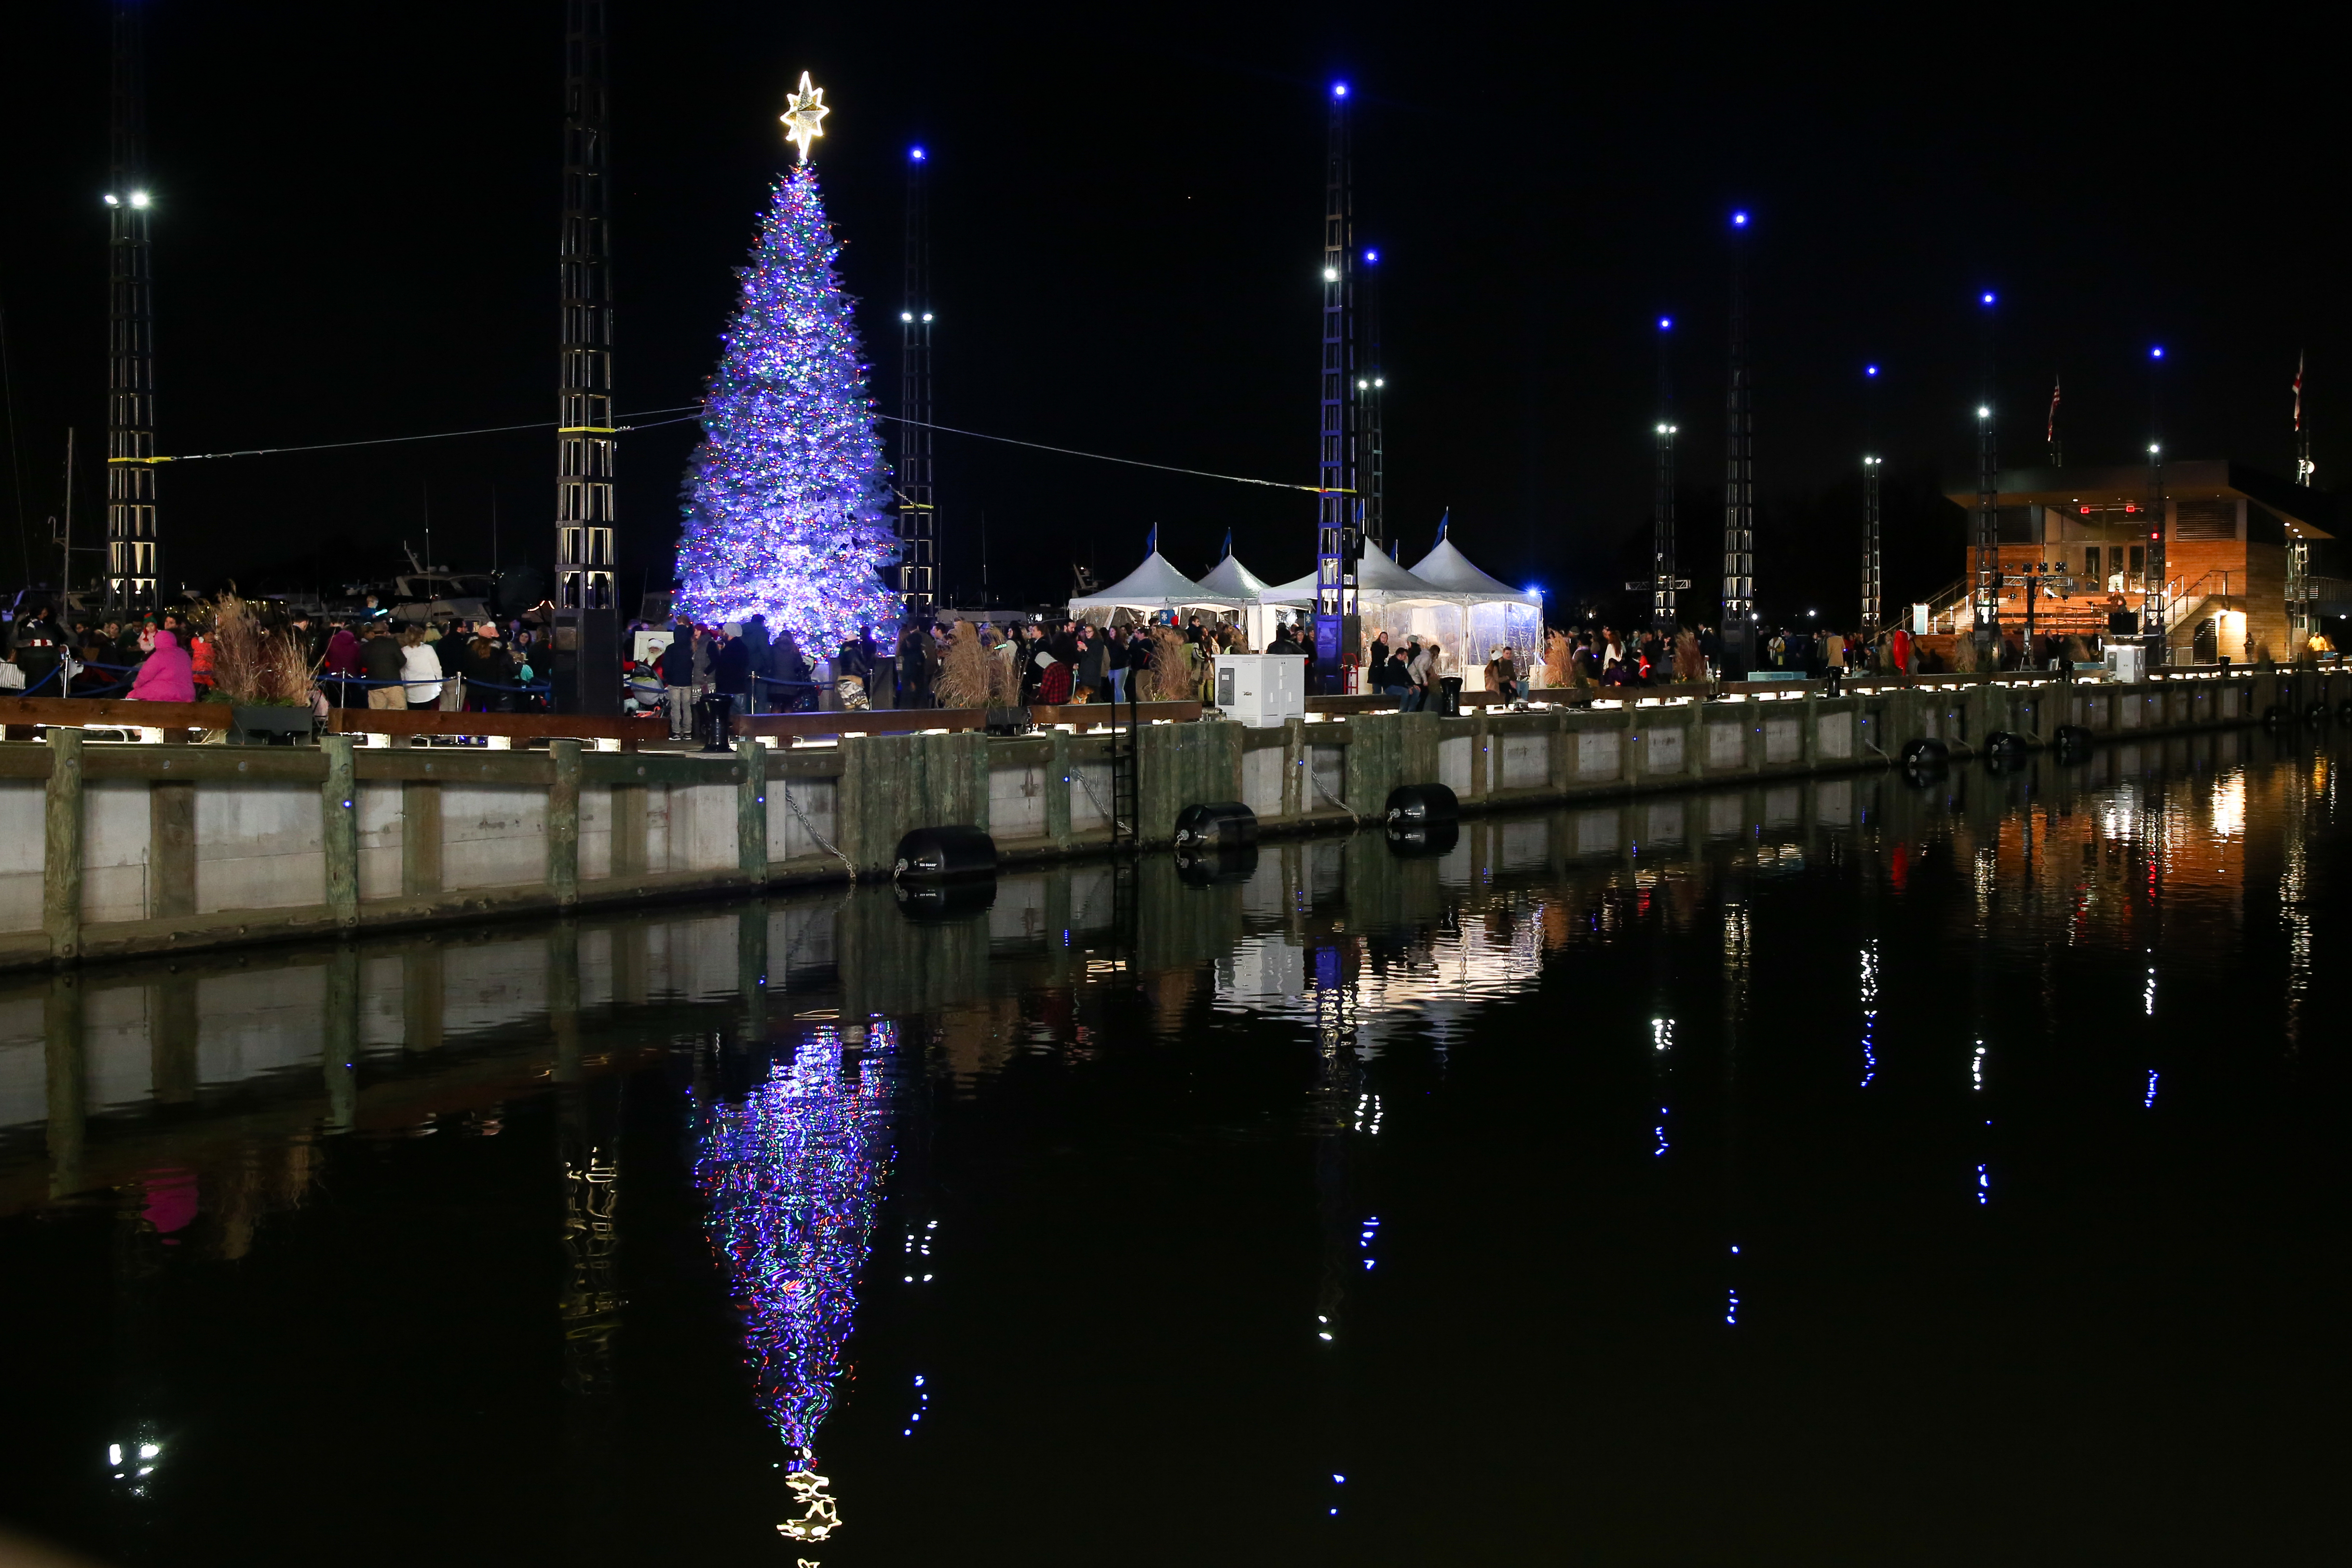 Santa Claus was on hand to light up The Wharf's first Christmas tree on December 1. However, the gorgeous tree wasn't the only draw. Visitors made s'mores, decorated gingerbread men a